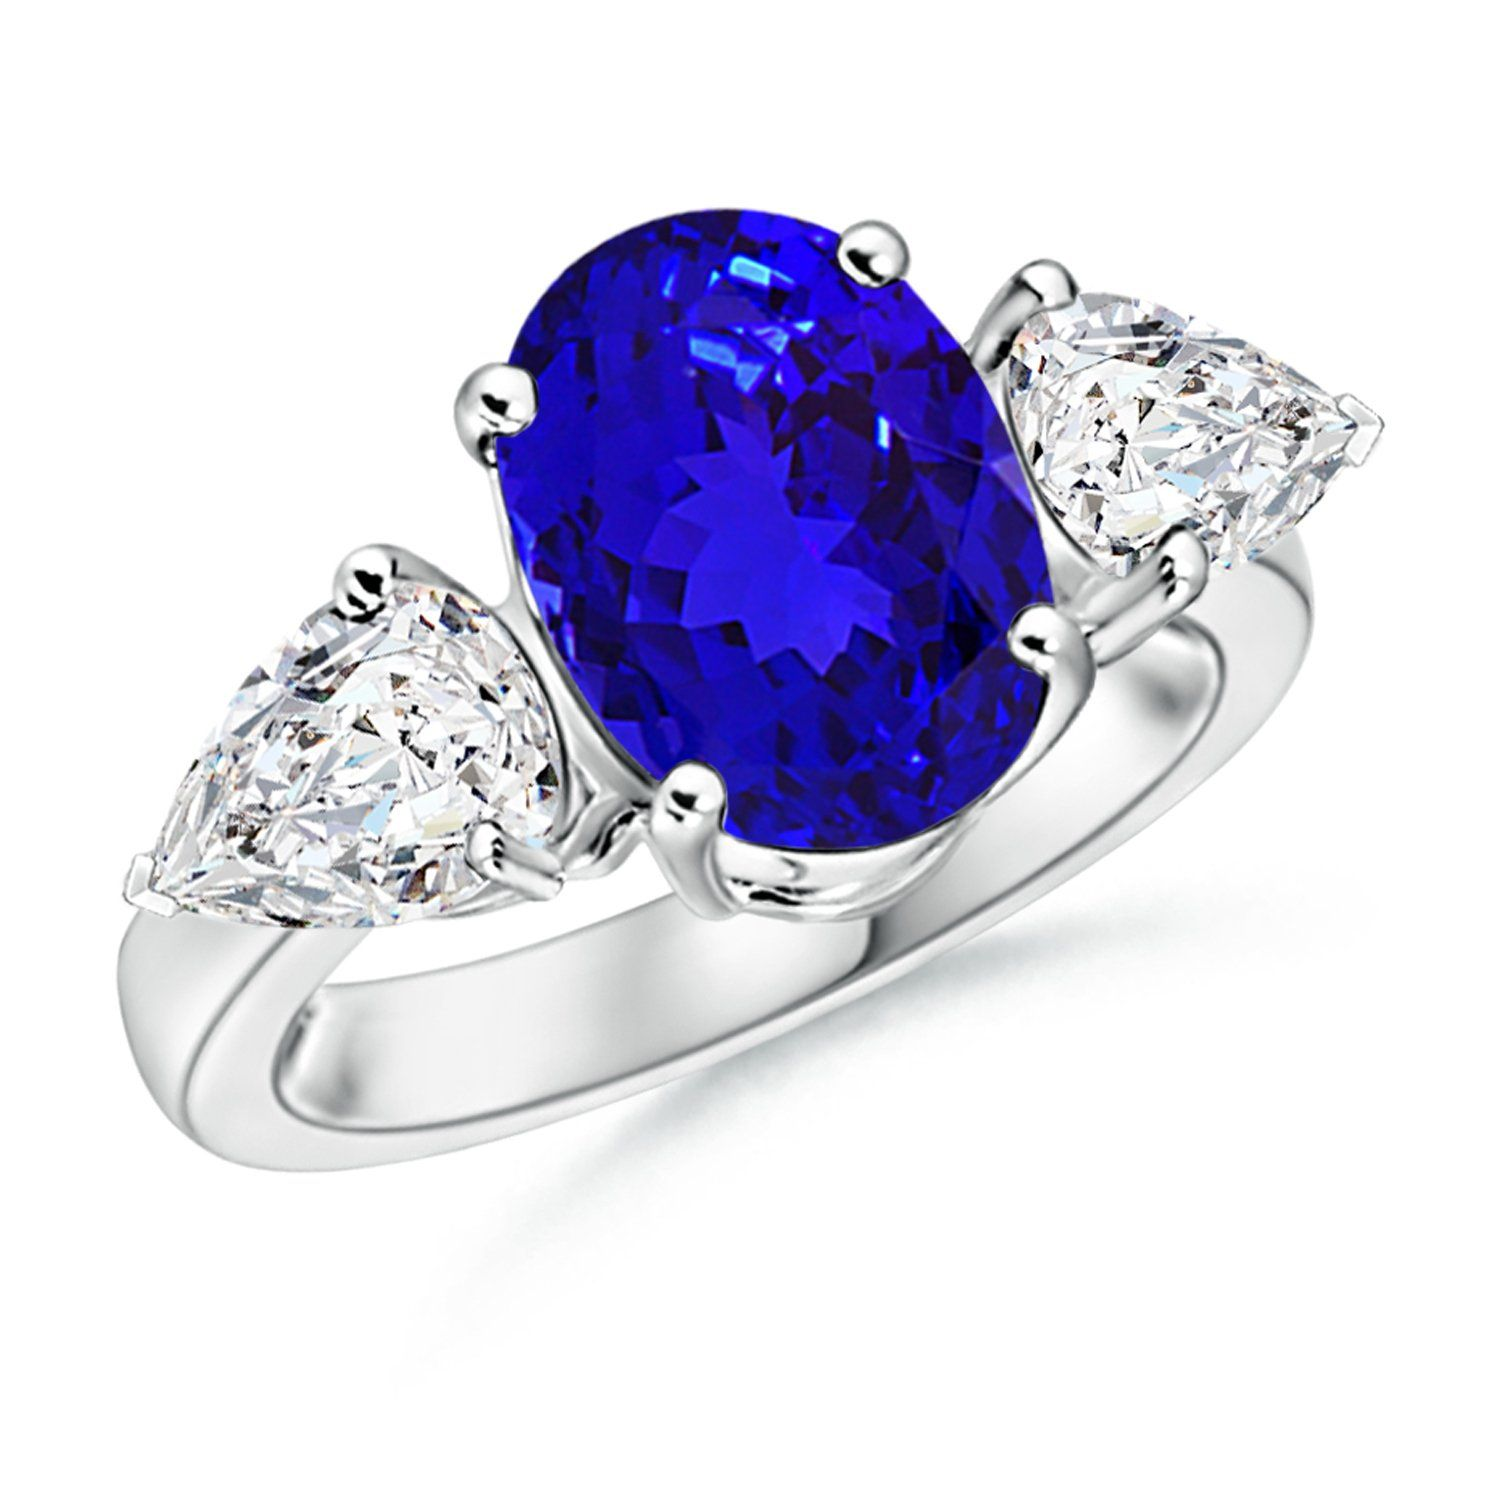 Angara Natural Blue Sapphire and Pear Diamond Three Stone Ring in Platinum RVvwPzbNR